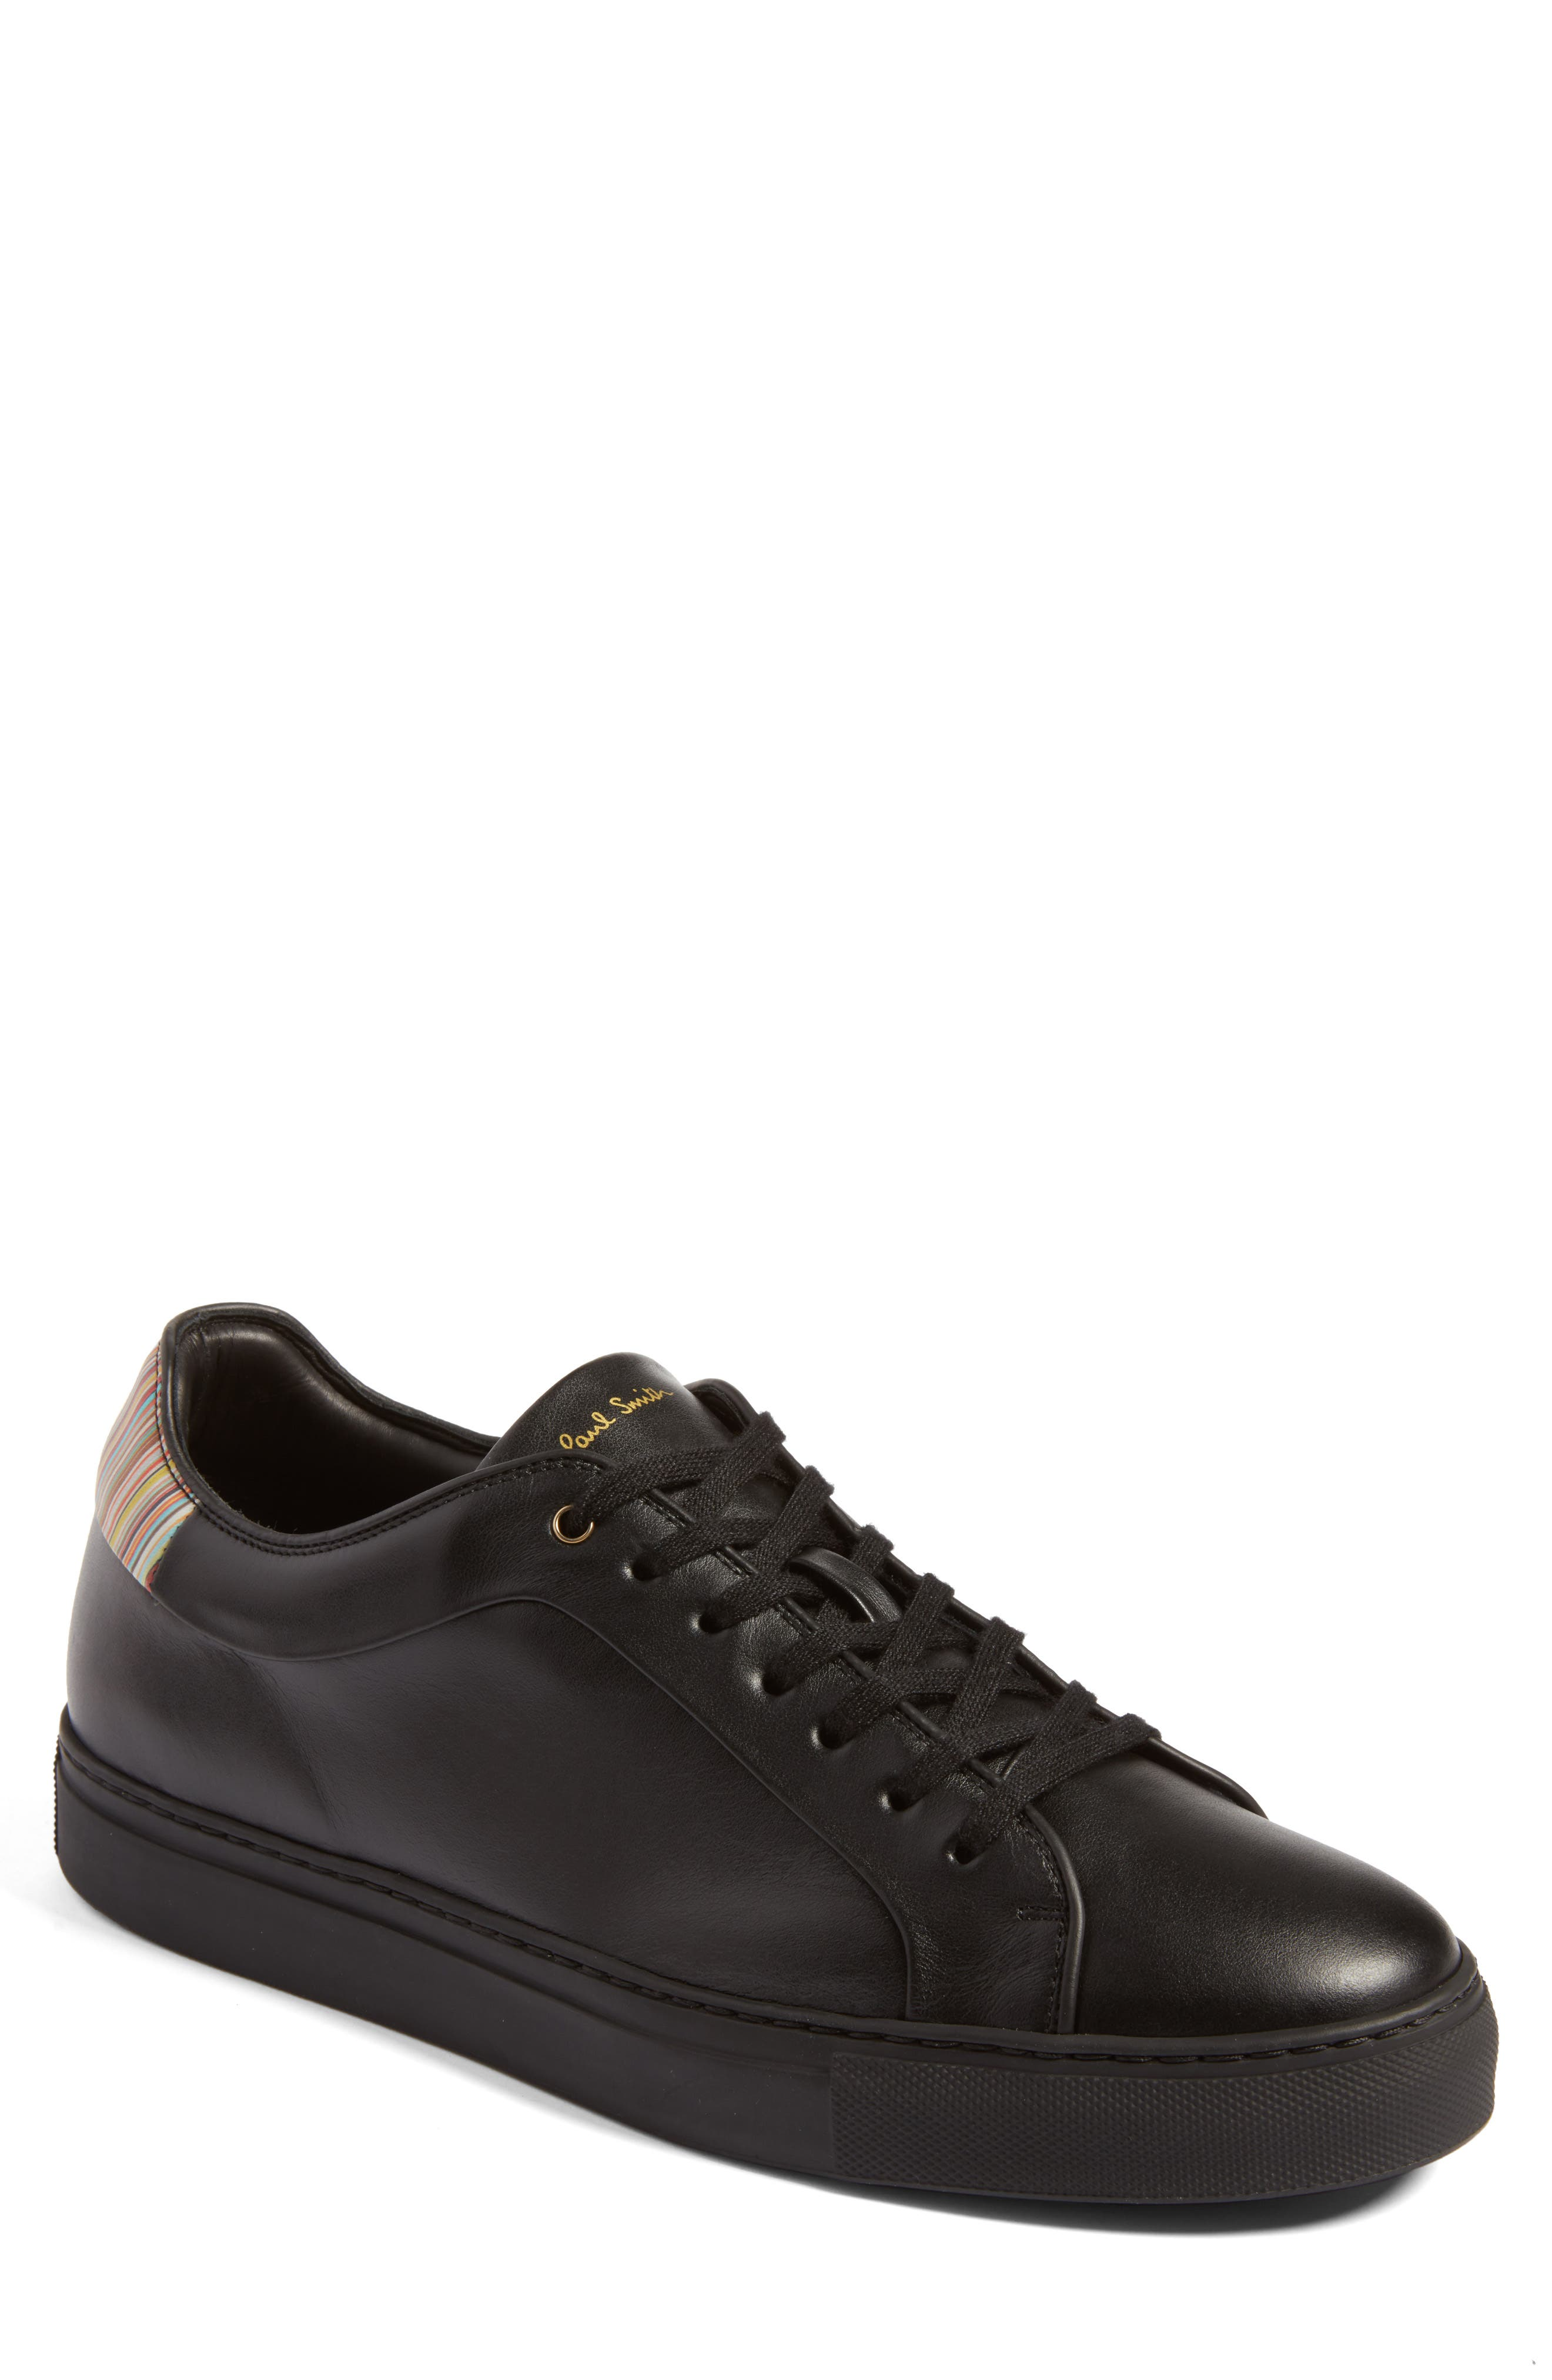 Main Image - Paul Smith Basso Sneaker (Men)